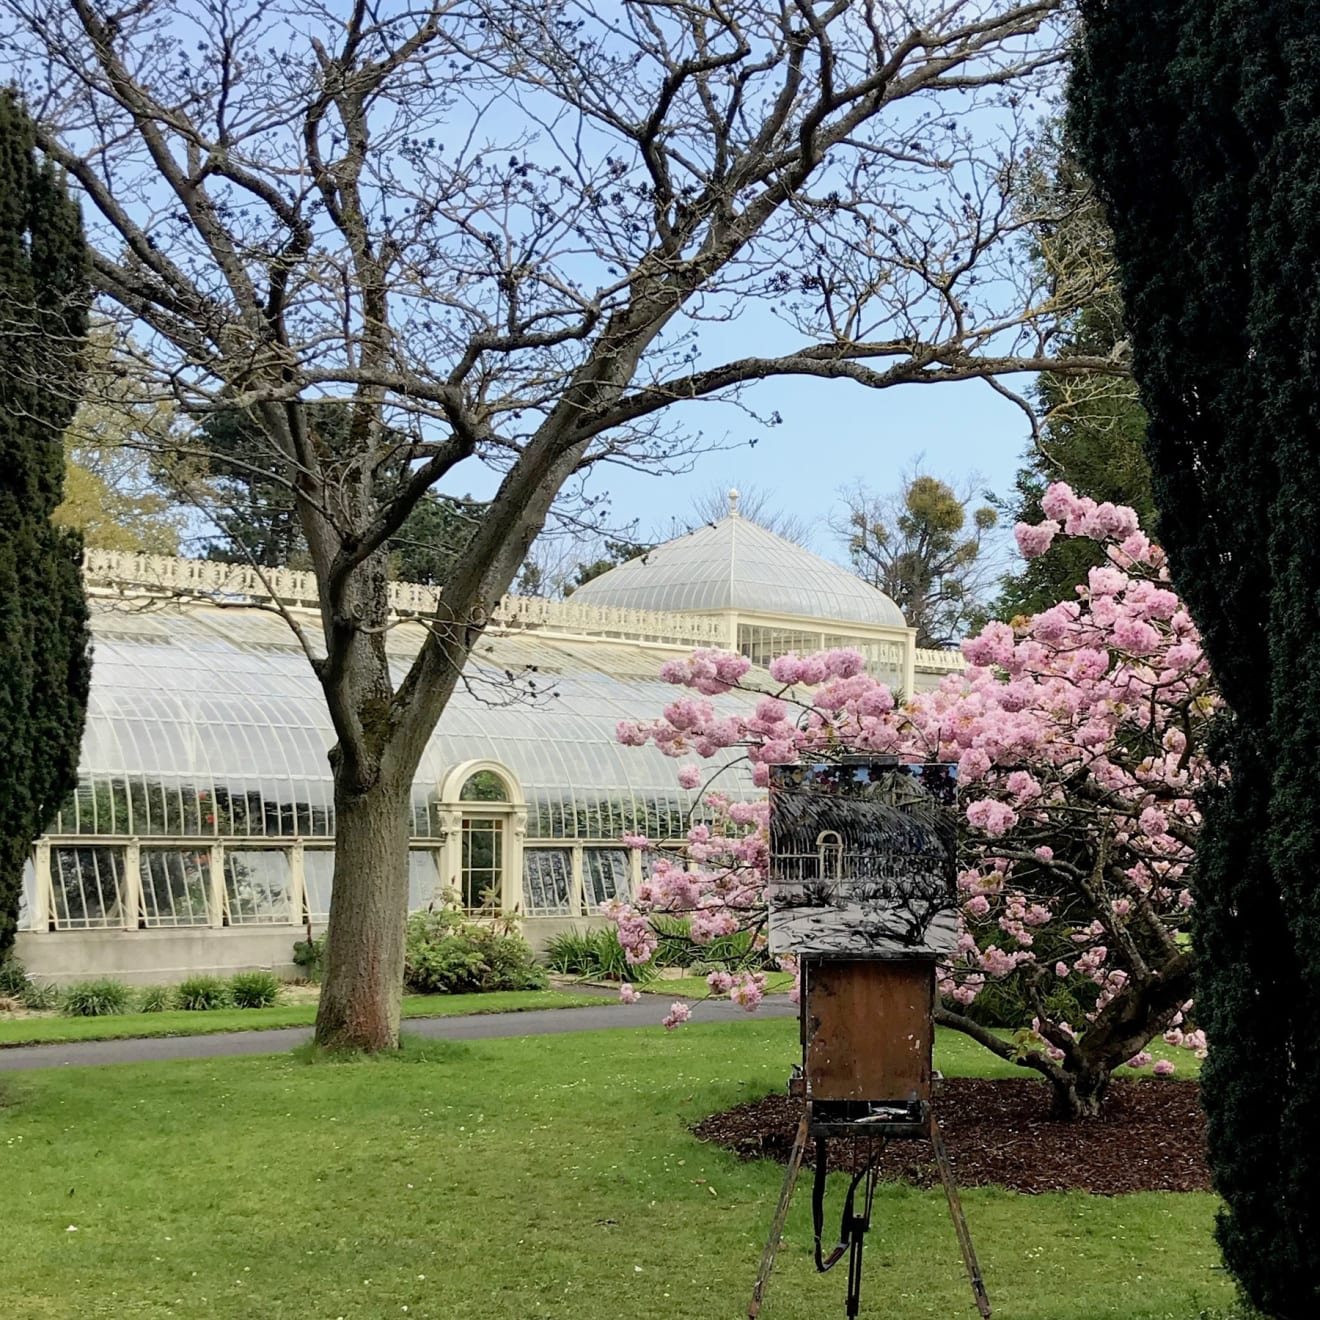 11 APRIL 2019 NATIONAL BOTANIC GARDENS OF IRELAND, DUBLIN Shades of Pink, sketch photo: Gerard Byrne